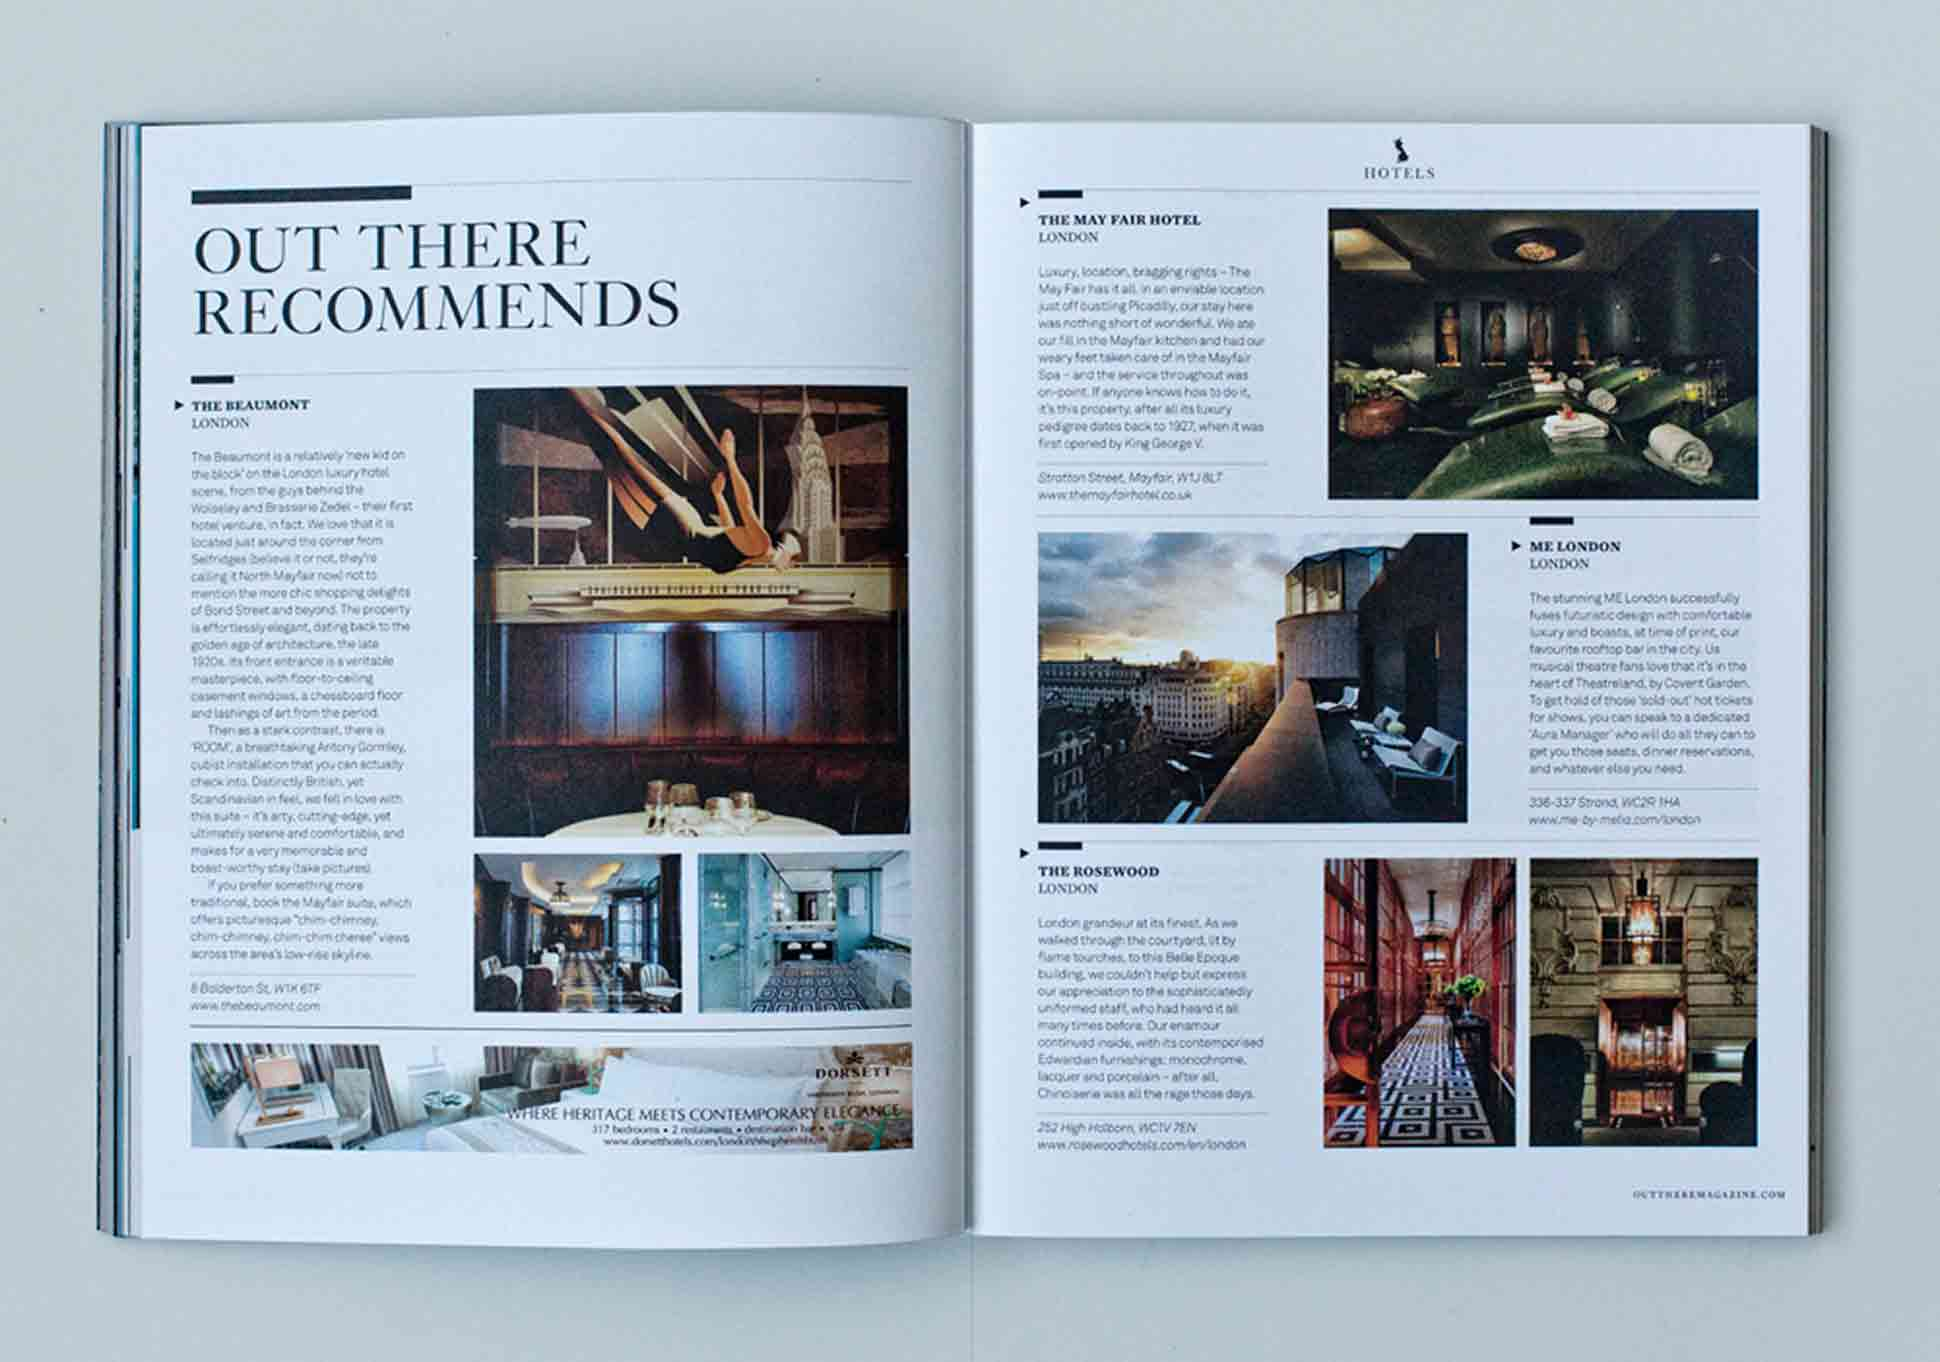 OutThere/Travel Great British Issue preview - Hotels Beaumont, ME London, Rosewood